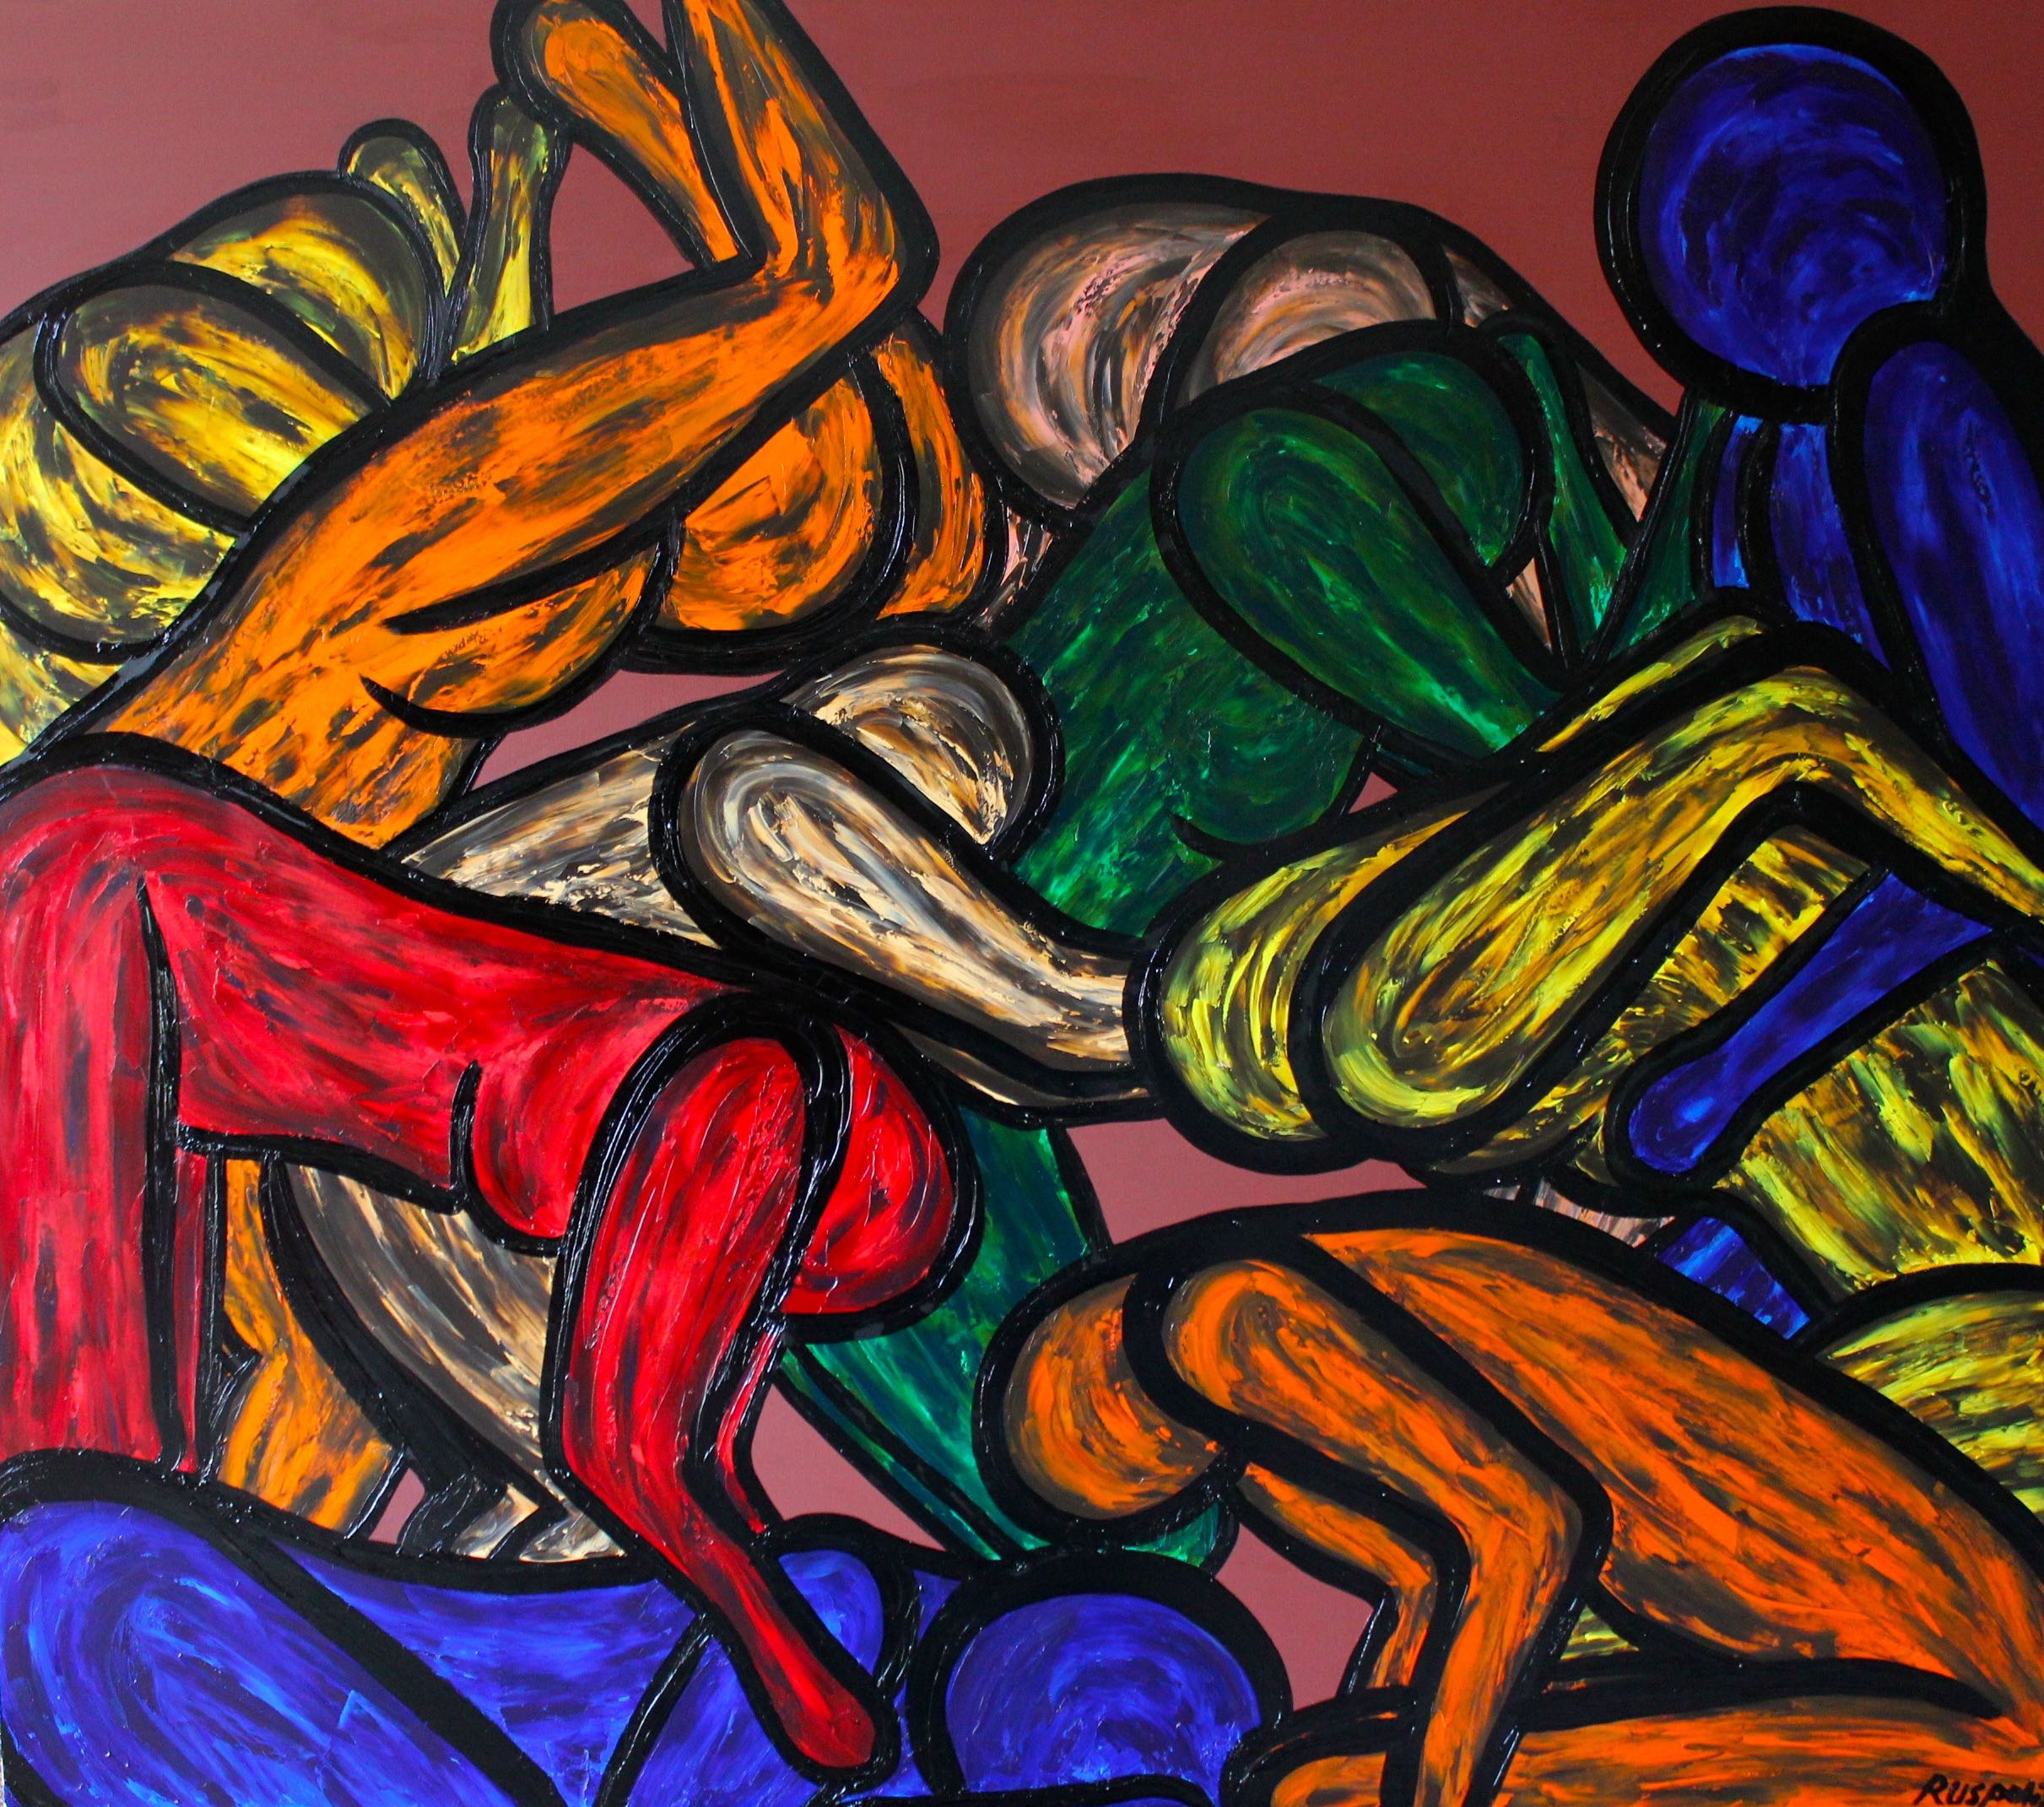 SLEEPING MOTHER, 77x67 inches